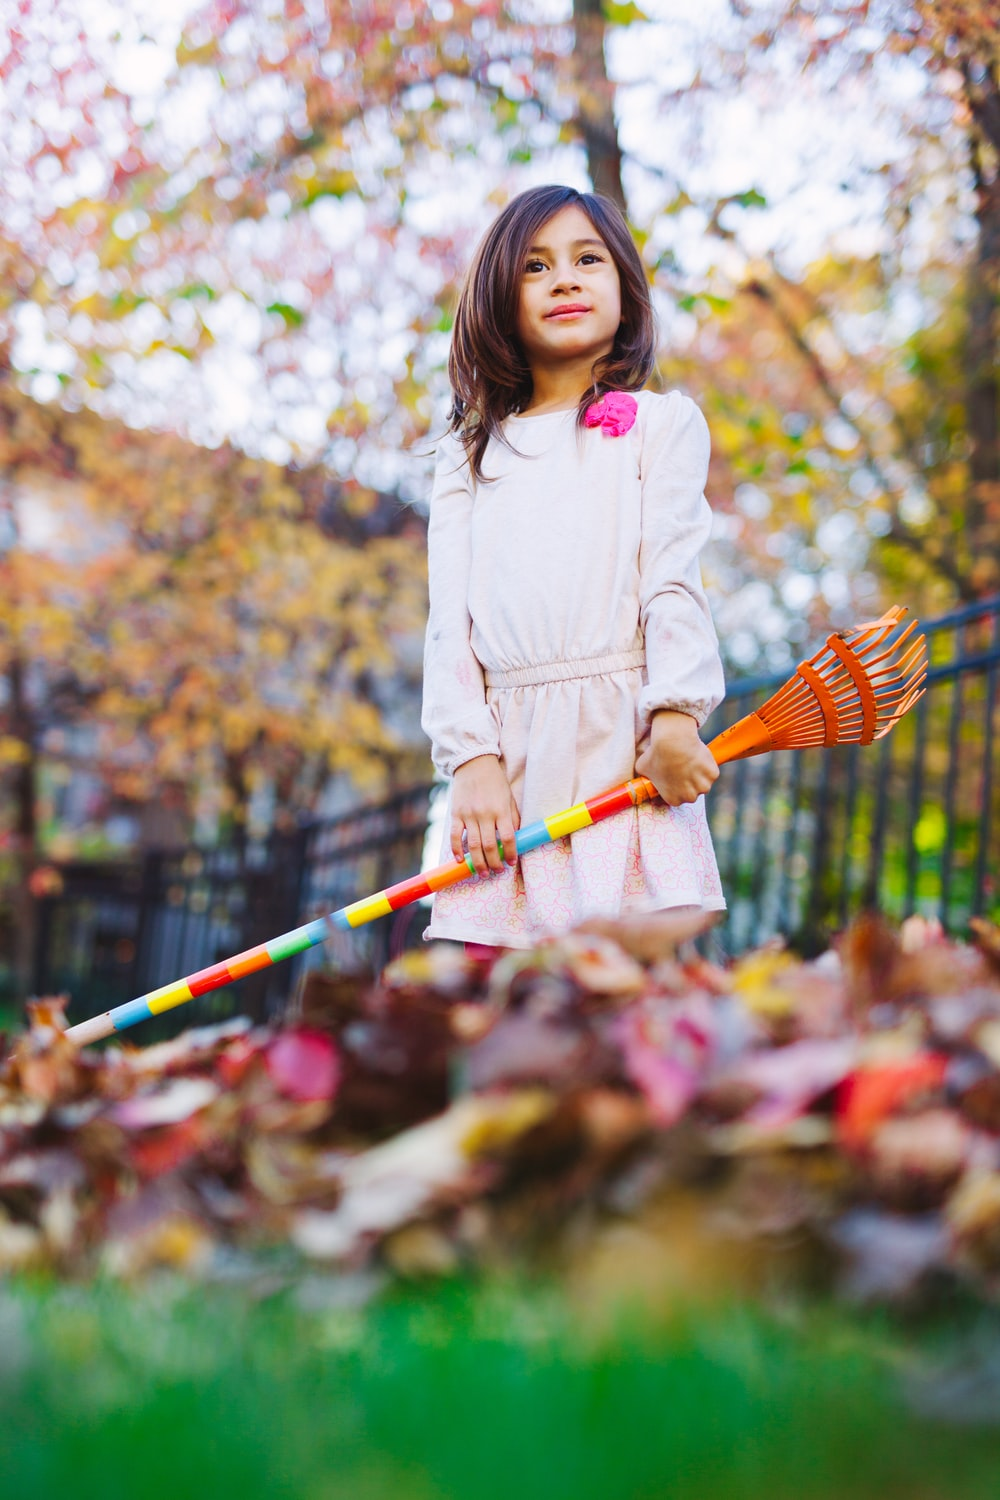 tilt shift photography of girl holding brown wooden rake